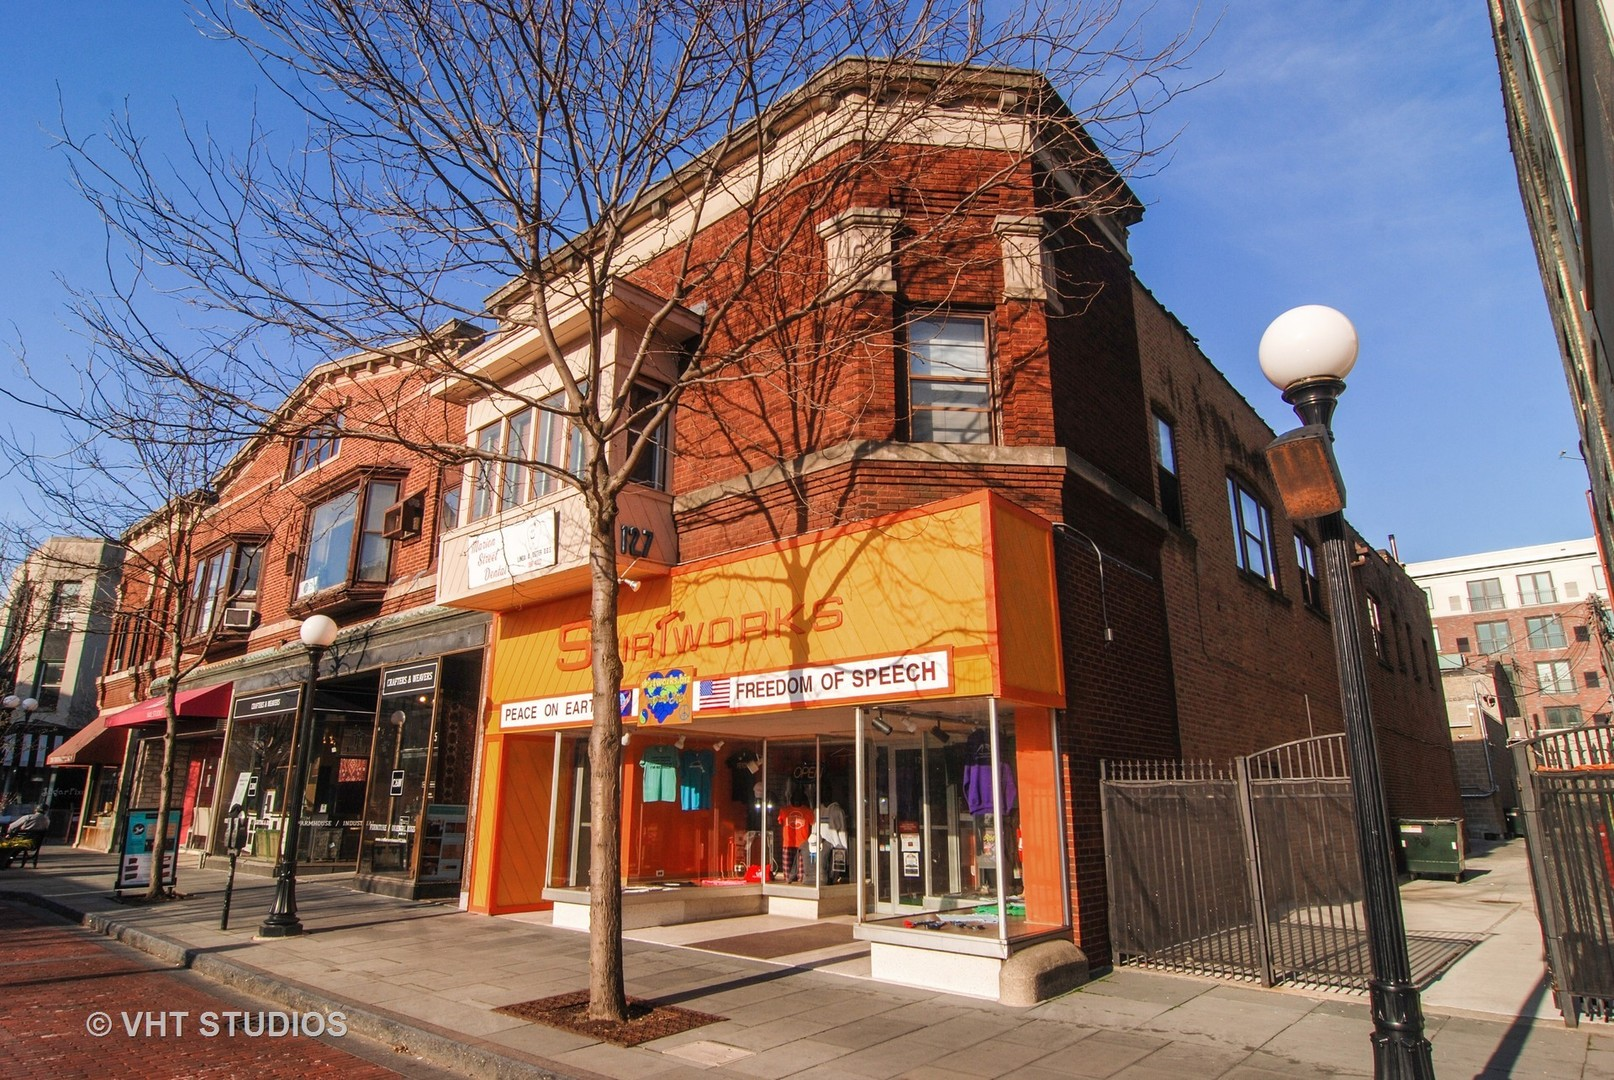 Property for sale at 127 North Marion Street, OAK PARK,  Il 60301